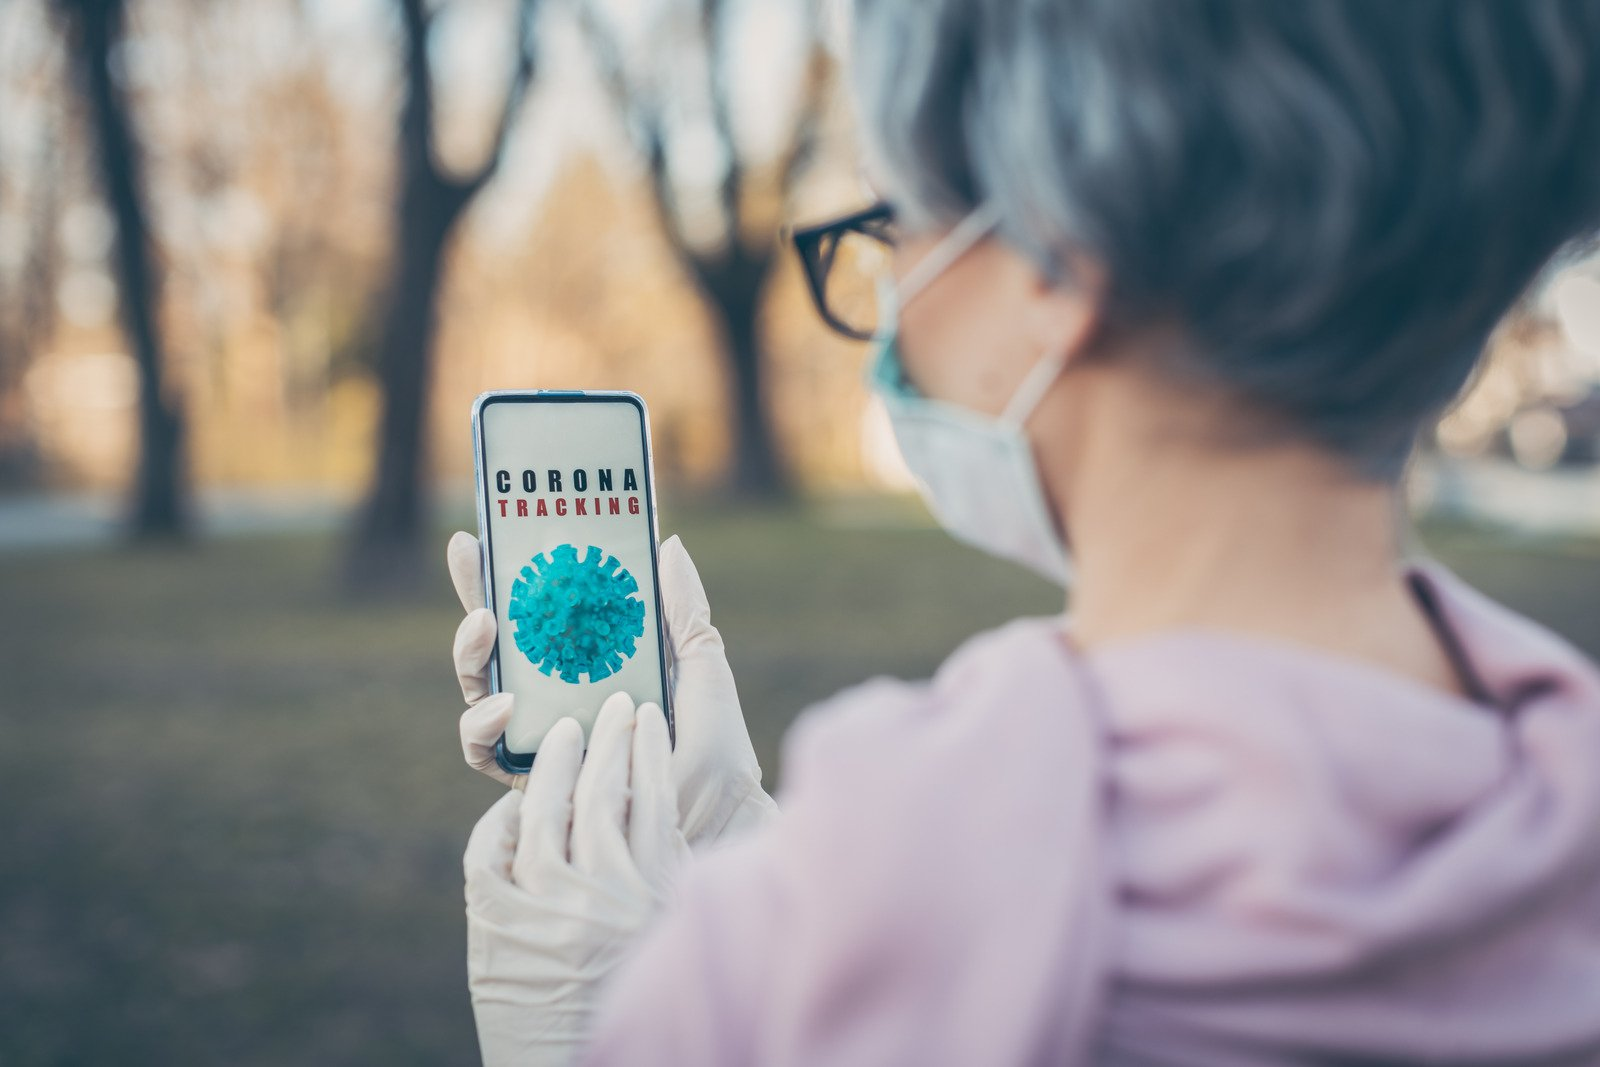 Woman using coronavirus tracking app on her phone